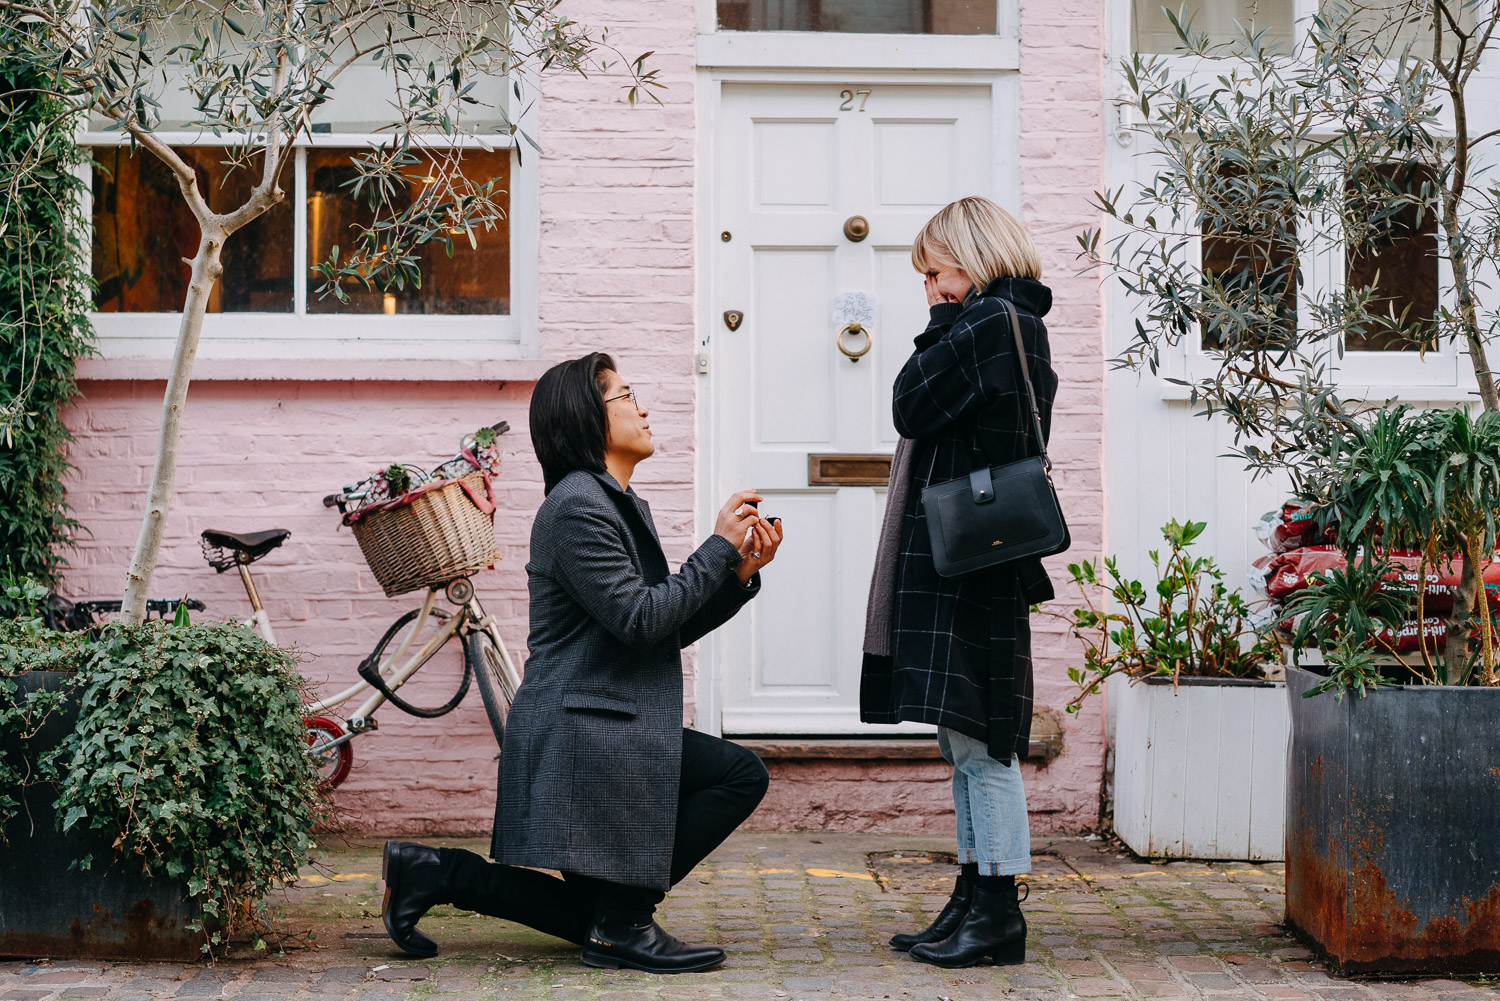 Surprise Proposal photoshoot in Notting Hill, London